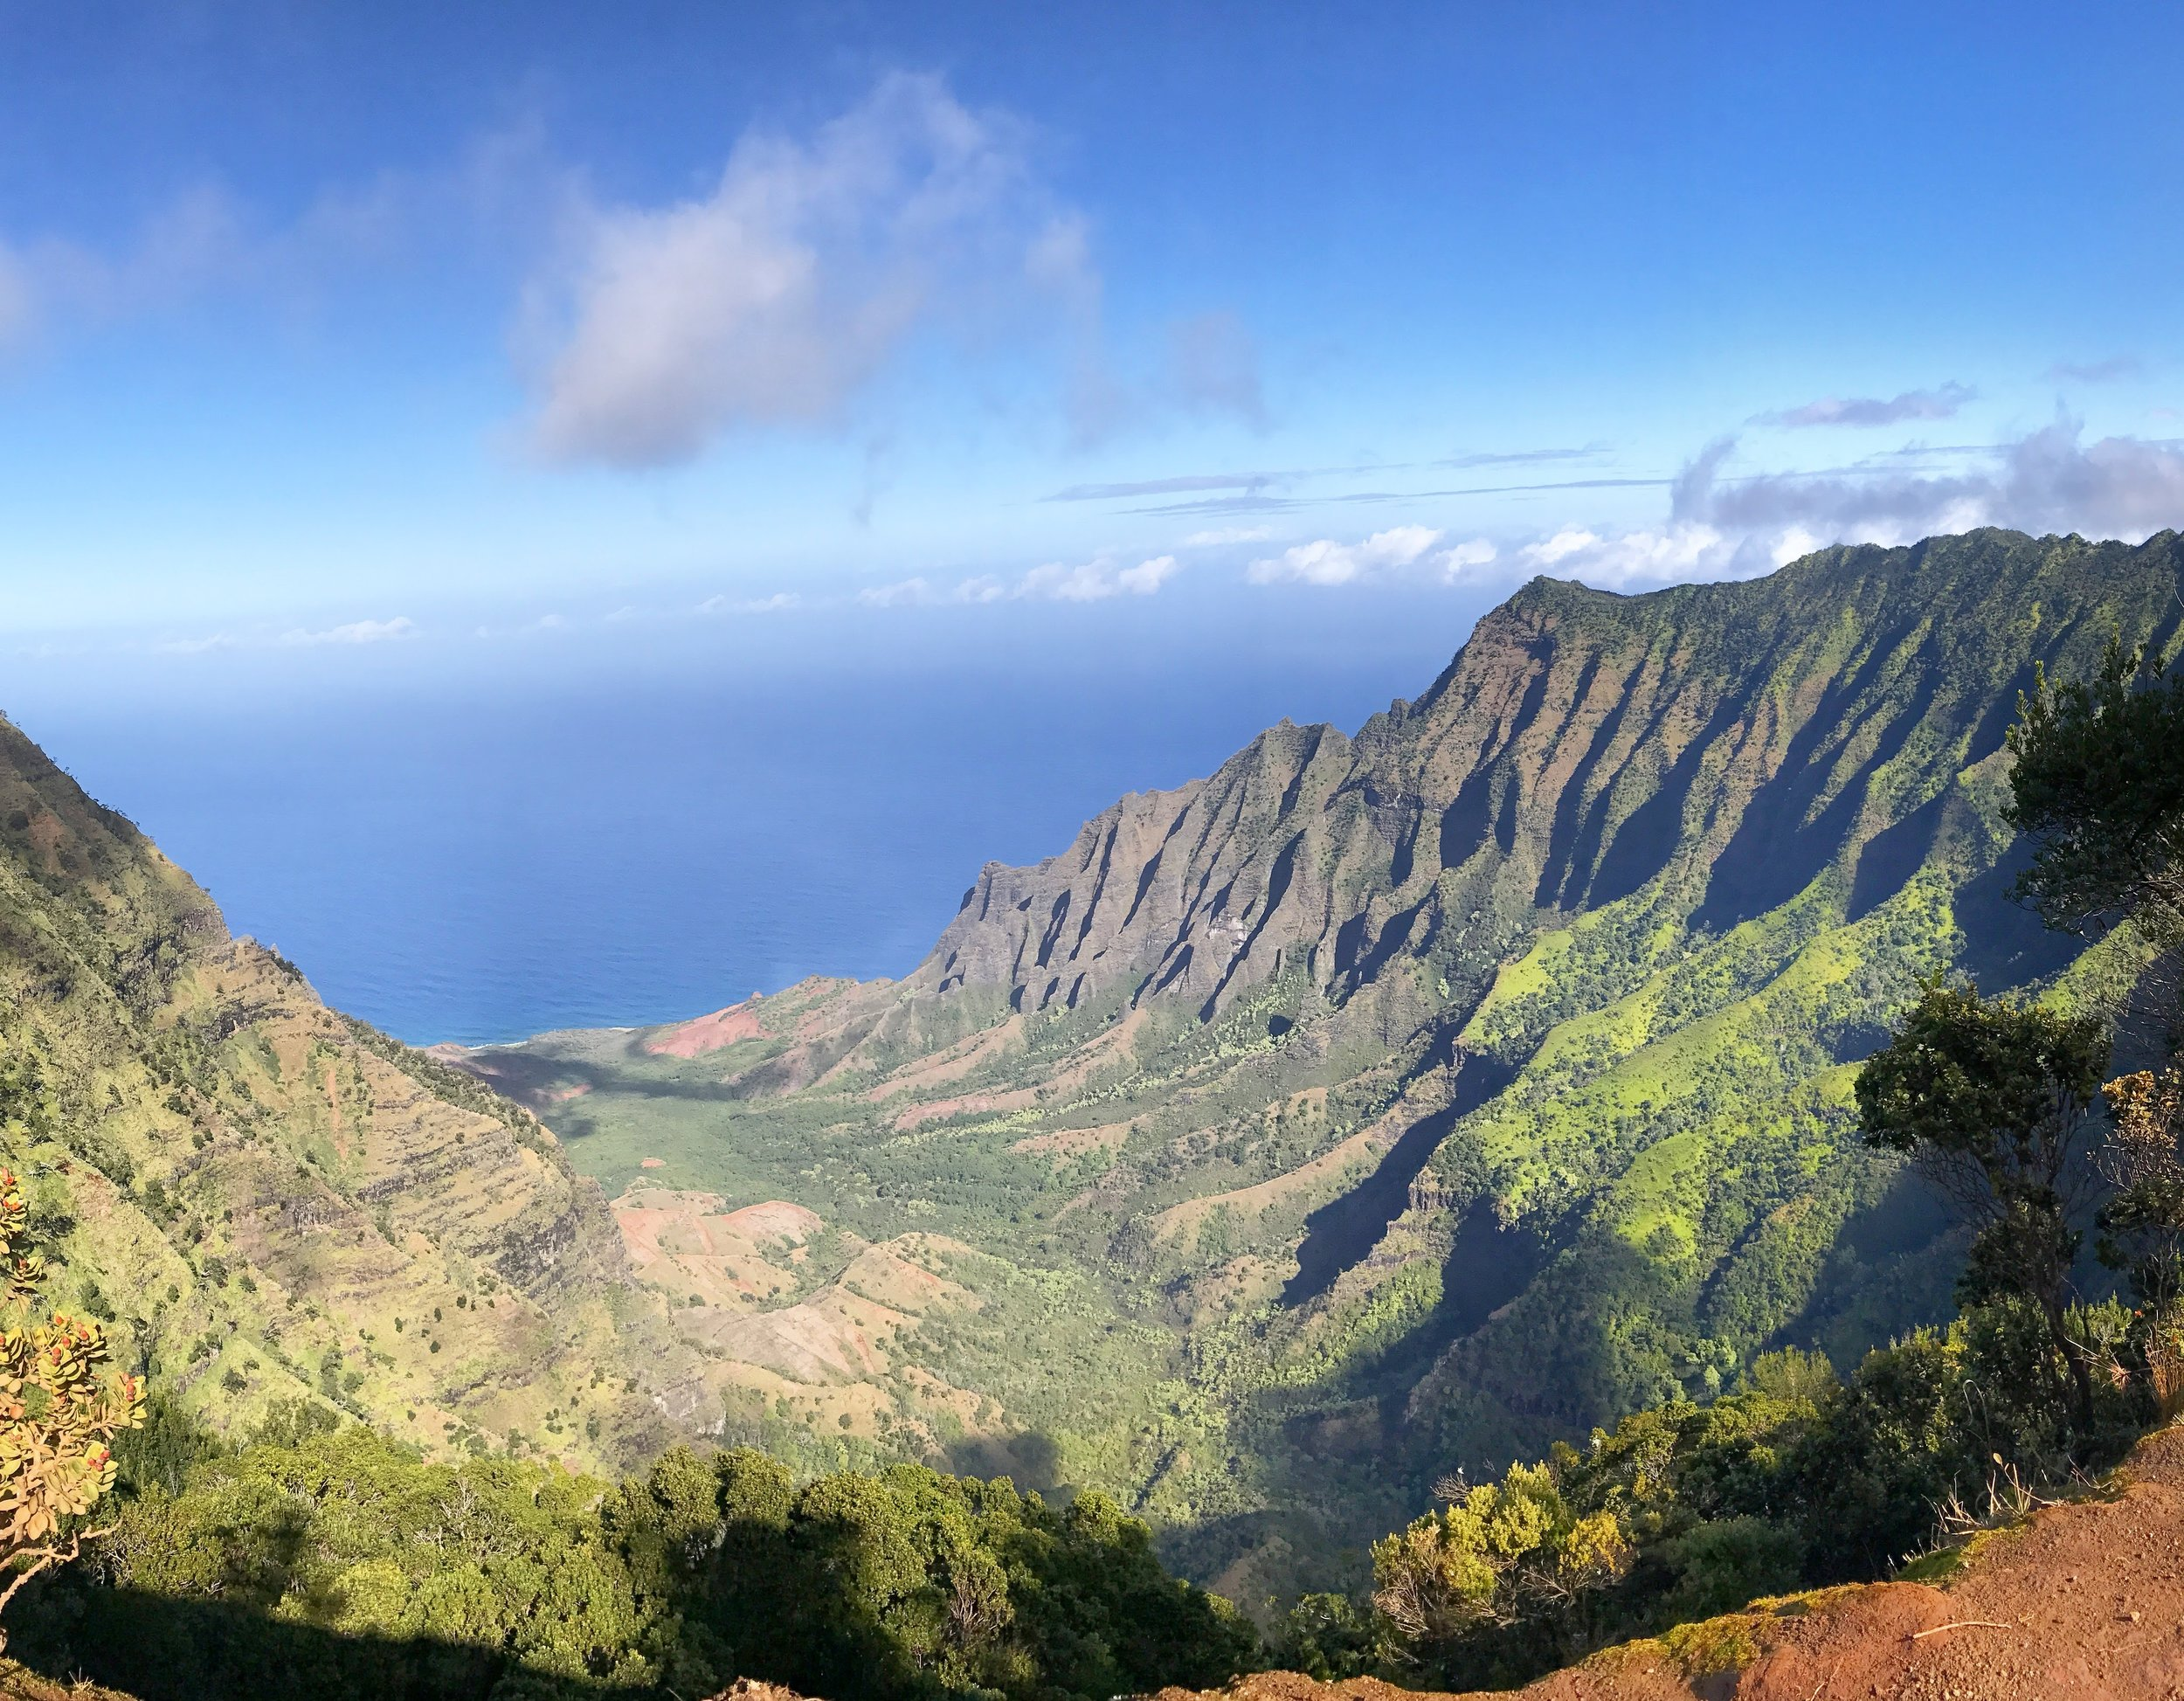 The view from the top of the Waimea Canyon scenic drive